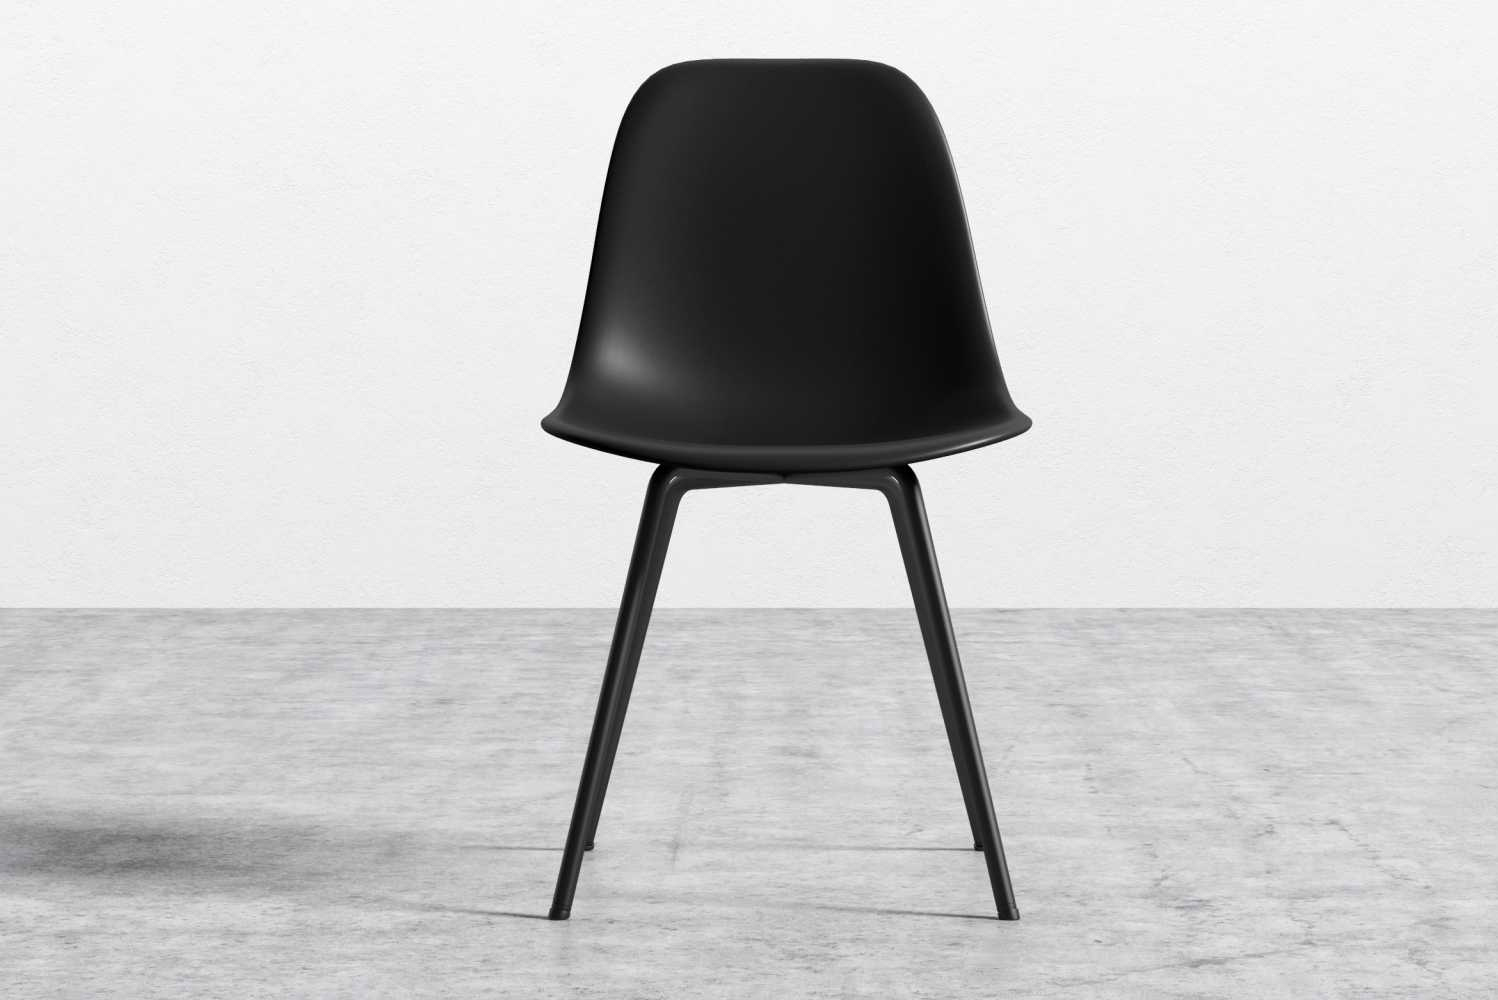 Introducing the Emilia chair from Rove Concepts, the sleek, luxurious version of the molded plastic DSR chair.